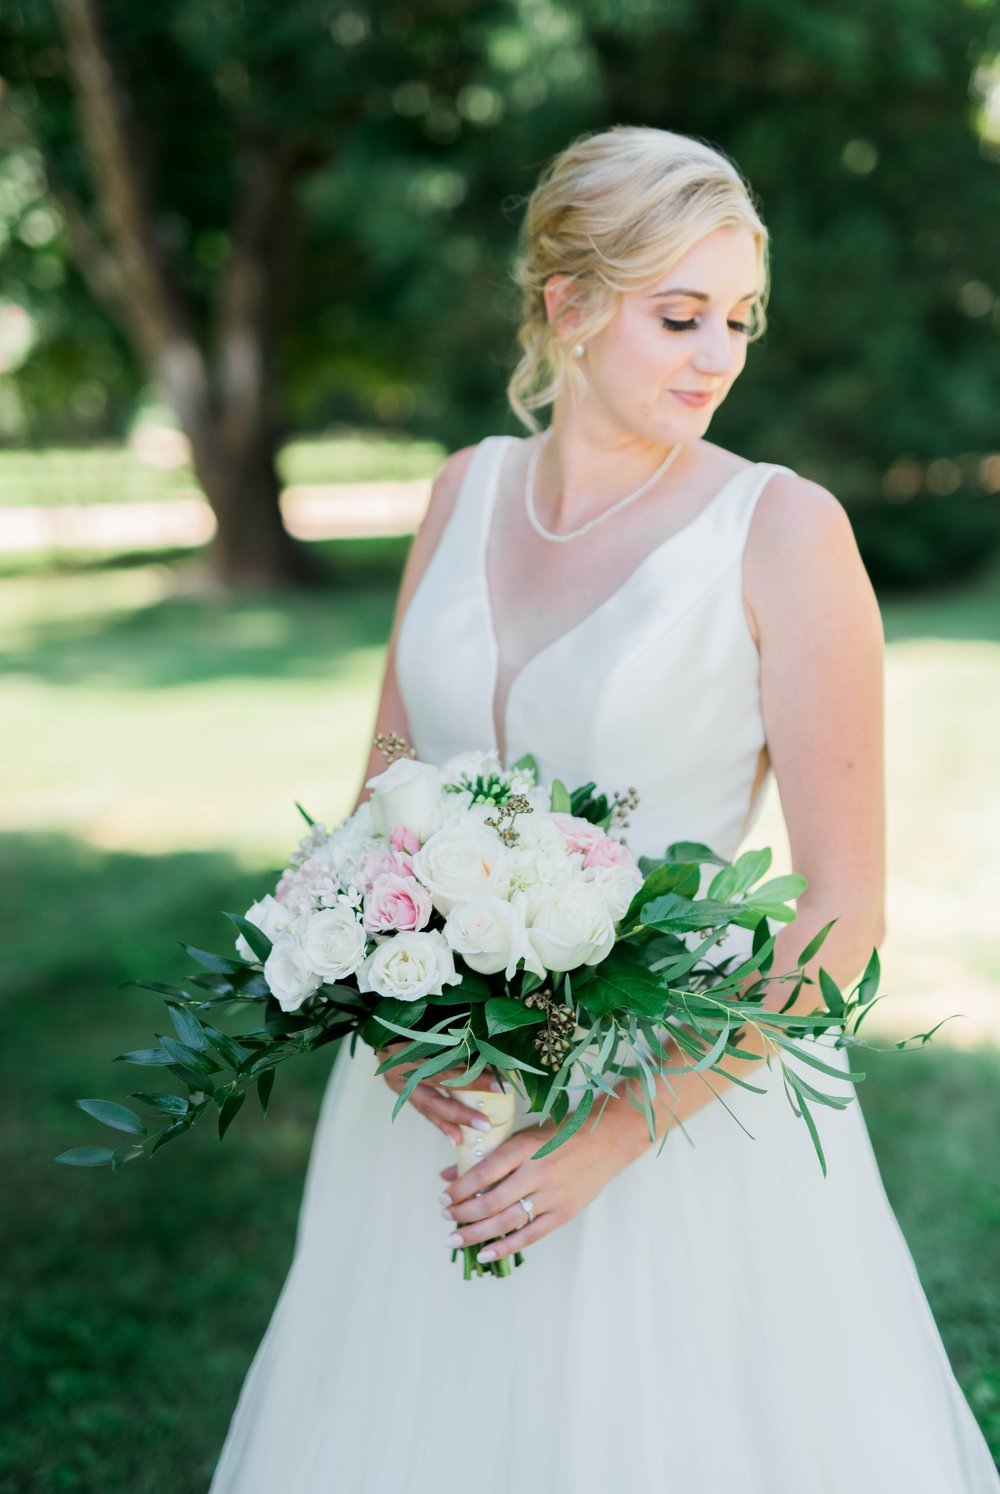 westmanorestate_entwinedevents_lynchburgweddingphotographer_Virginiaweddingphotographer_kateyam 31.jpg